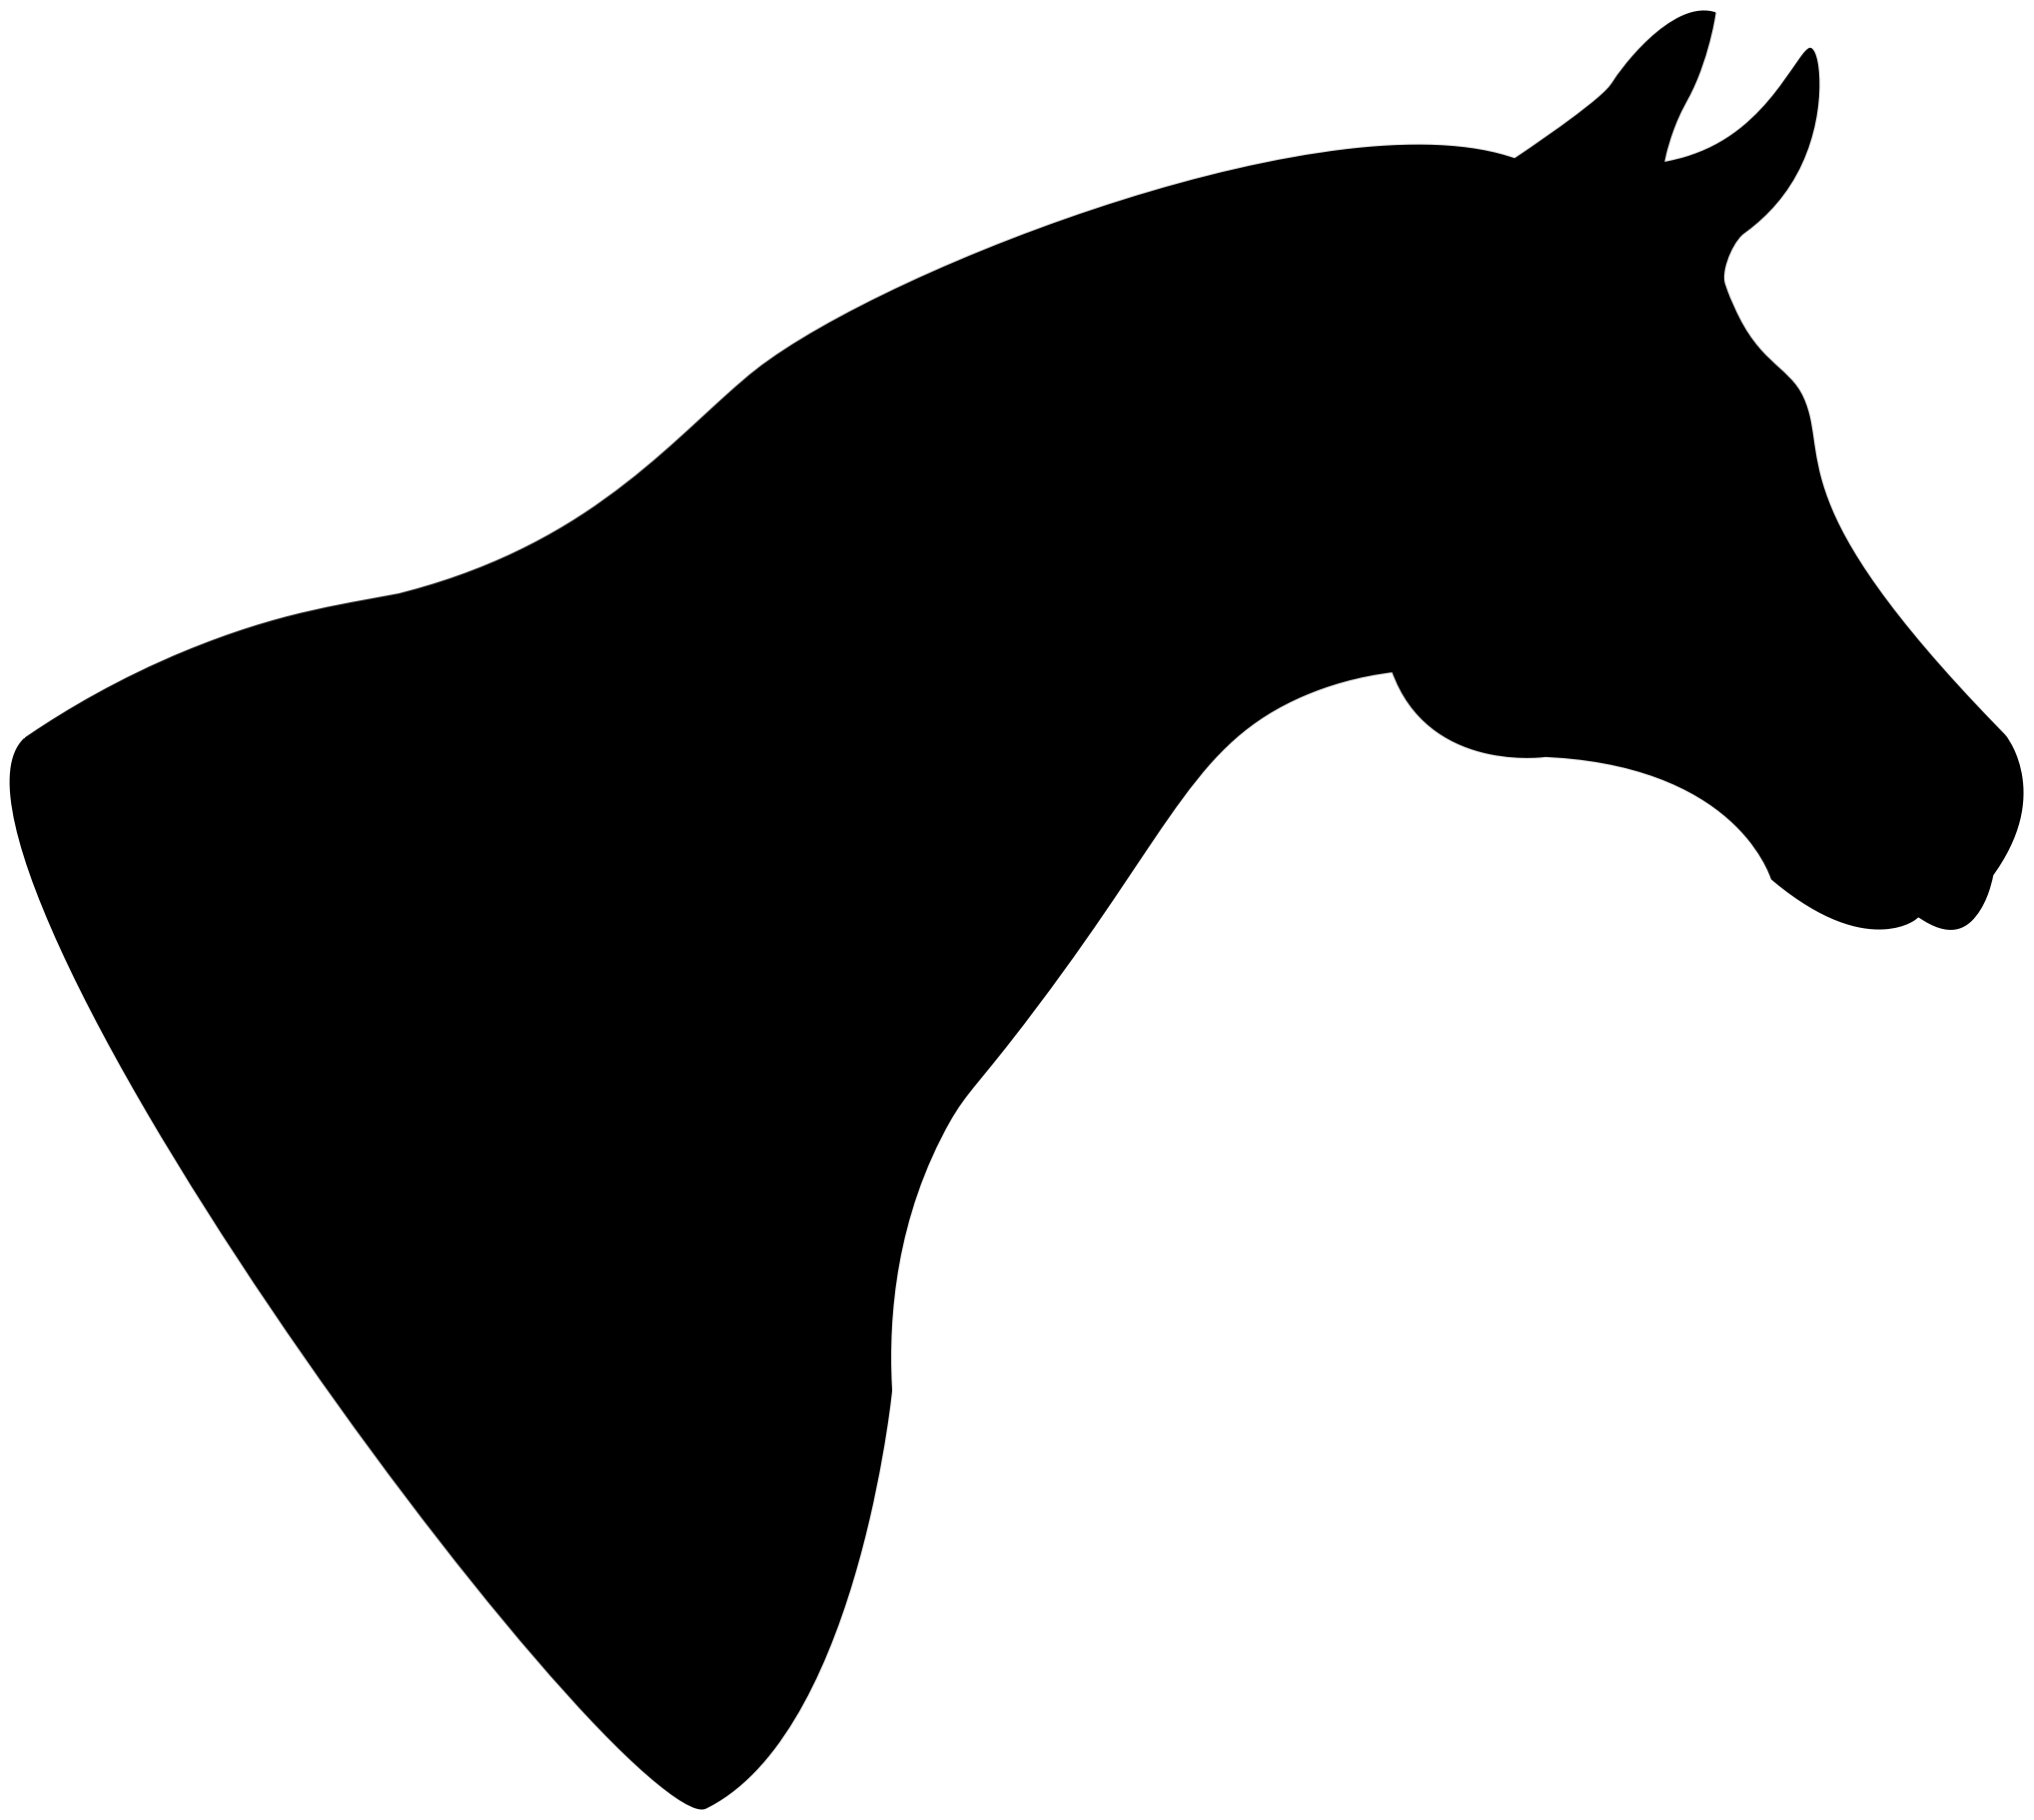 Horse Head Silhouette by GDJ